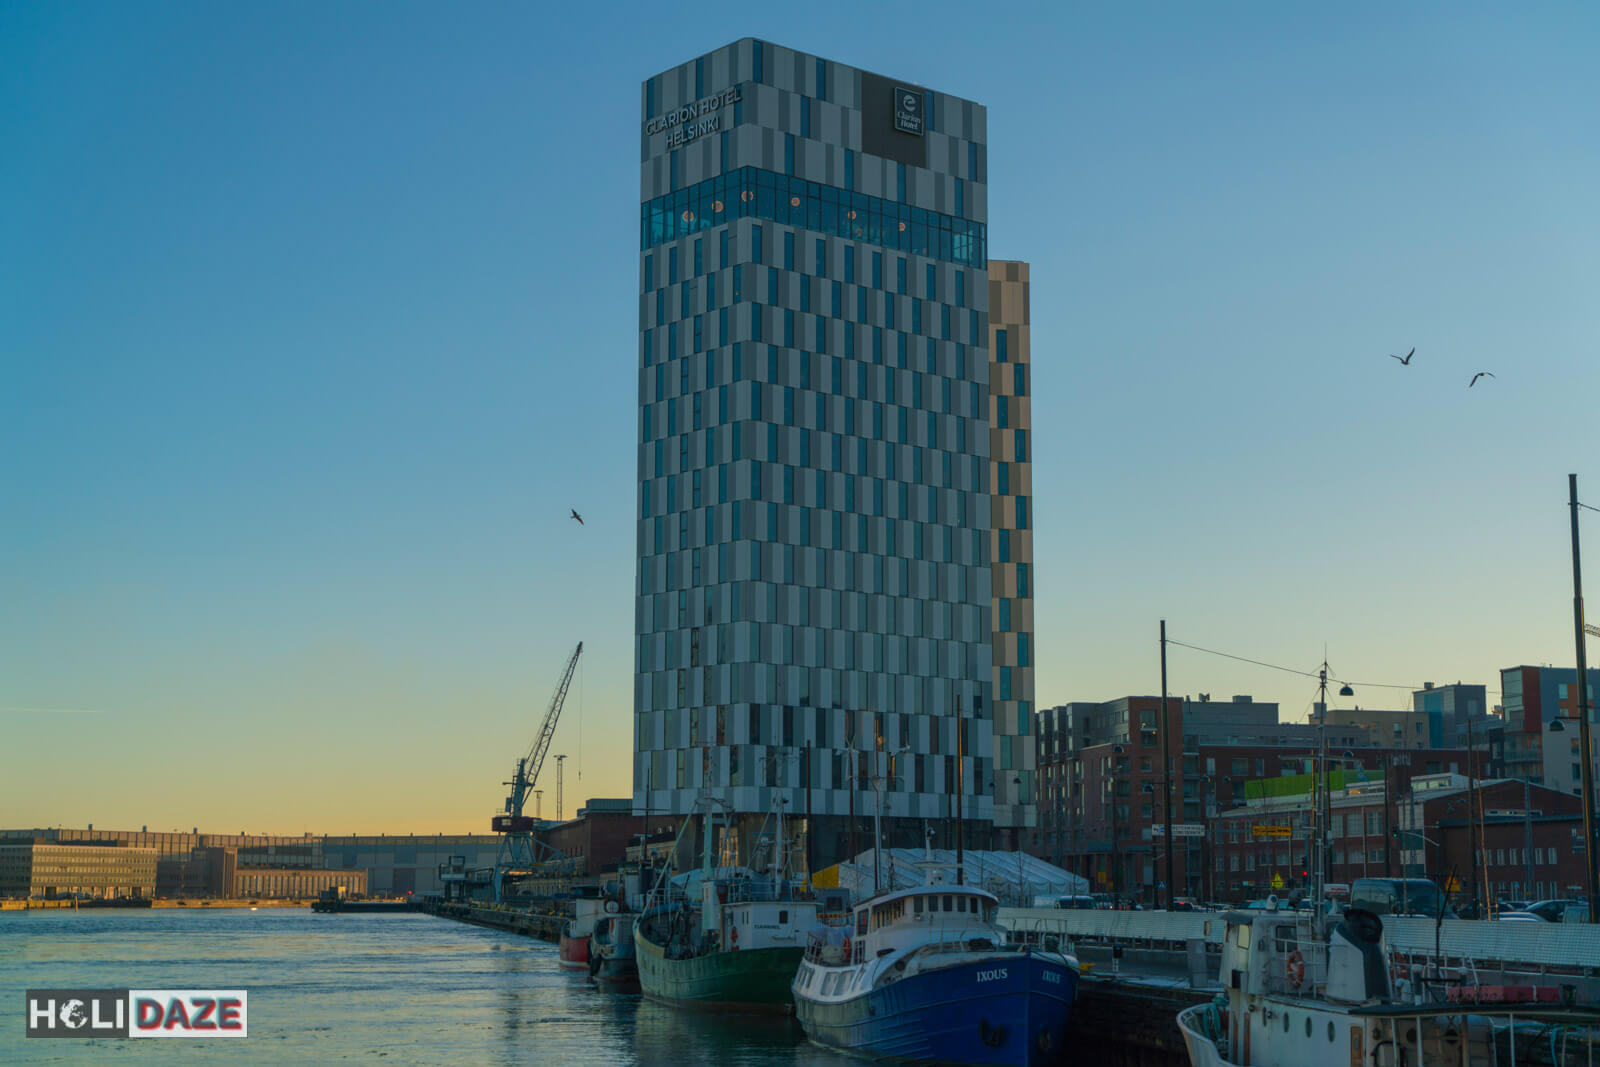 Clarion Hotel in Helsinki, Finland during the wintertime afternoon sunset